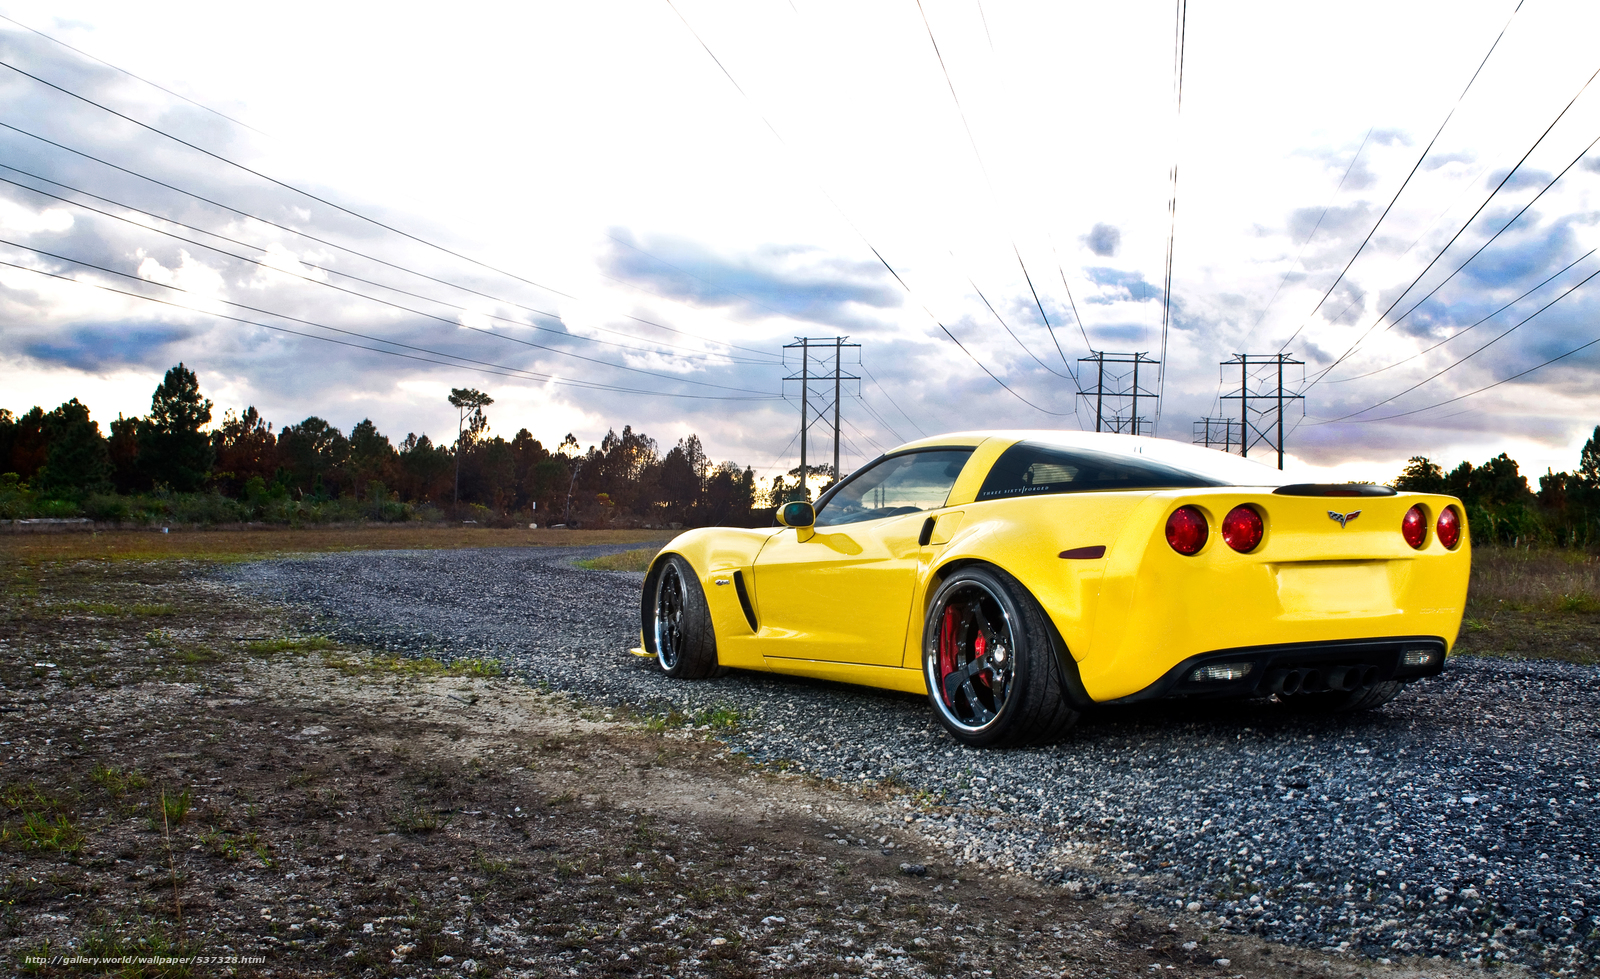 Download wallpaper wide body chevrolet corvette free desktop wallpaper in the resolution 4304x2634 picture 537328